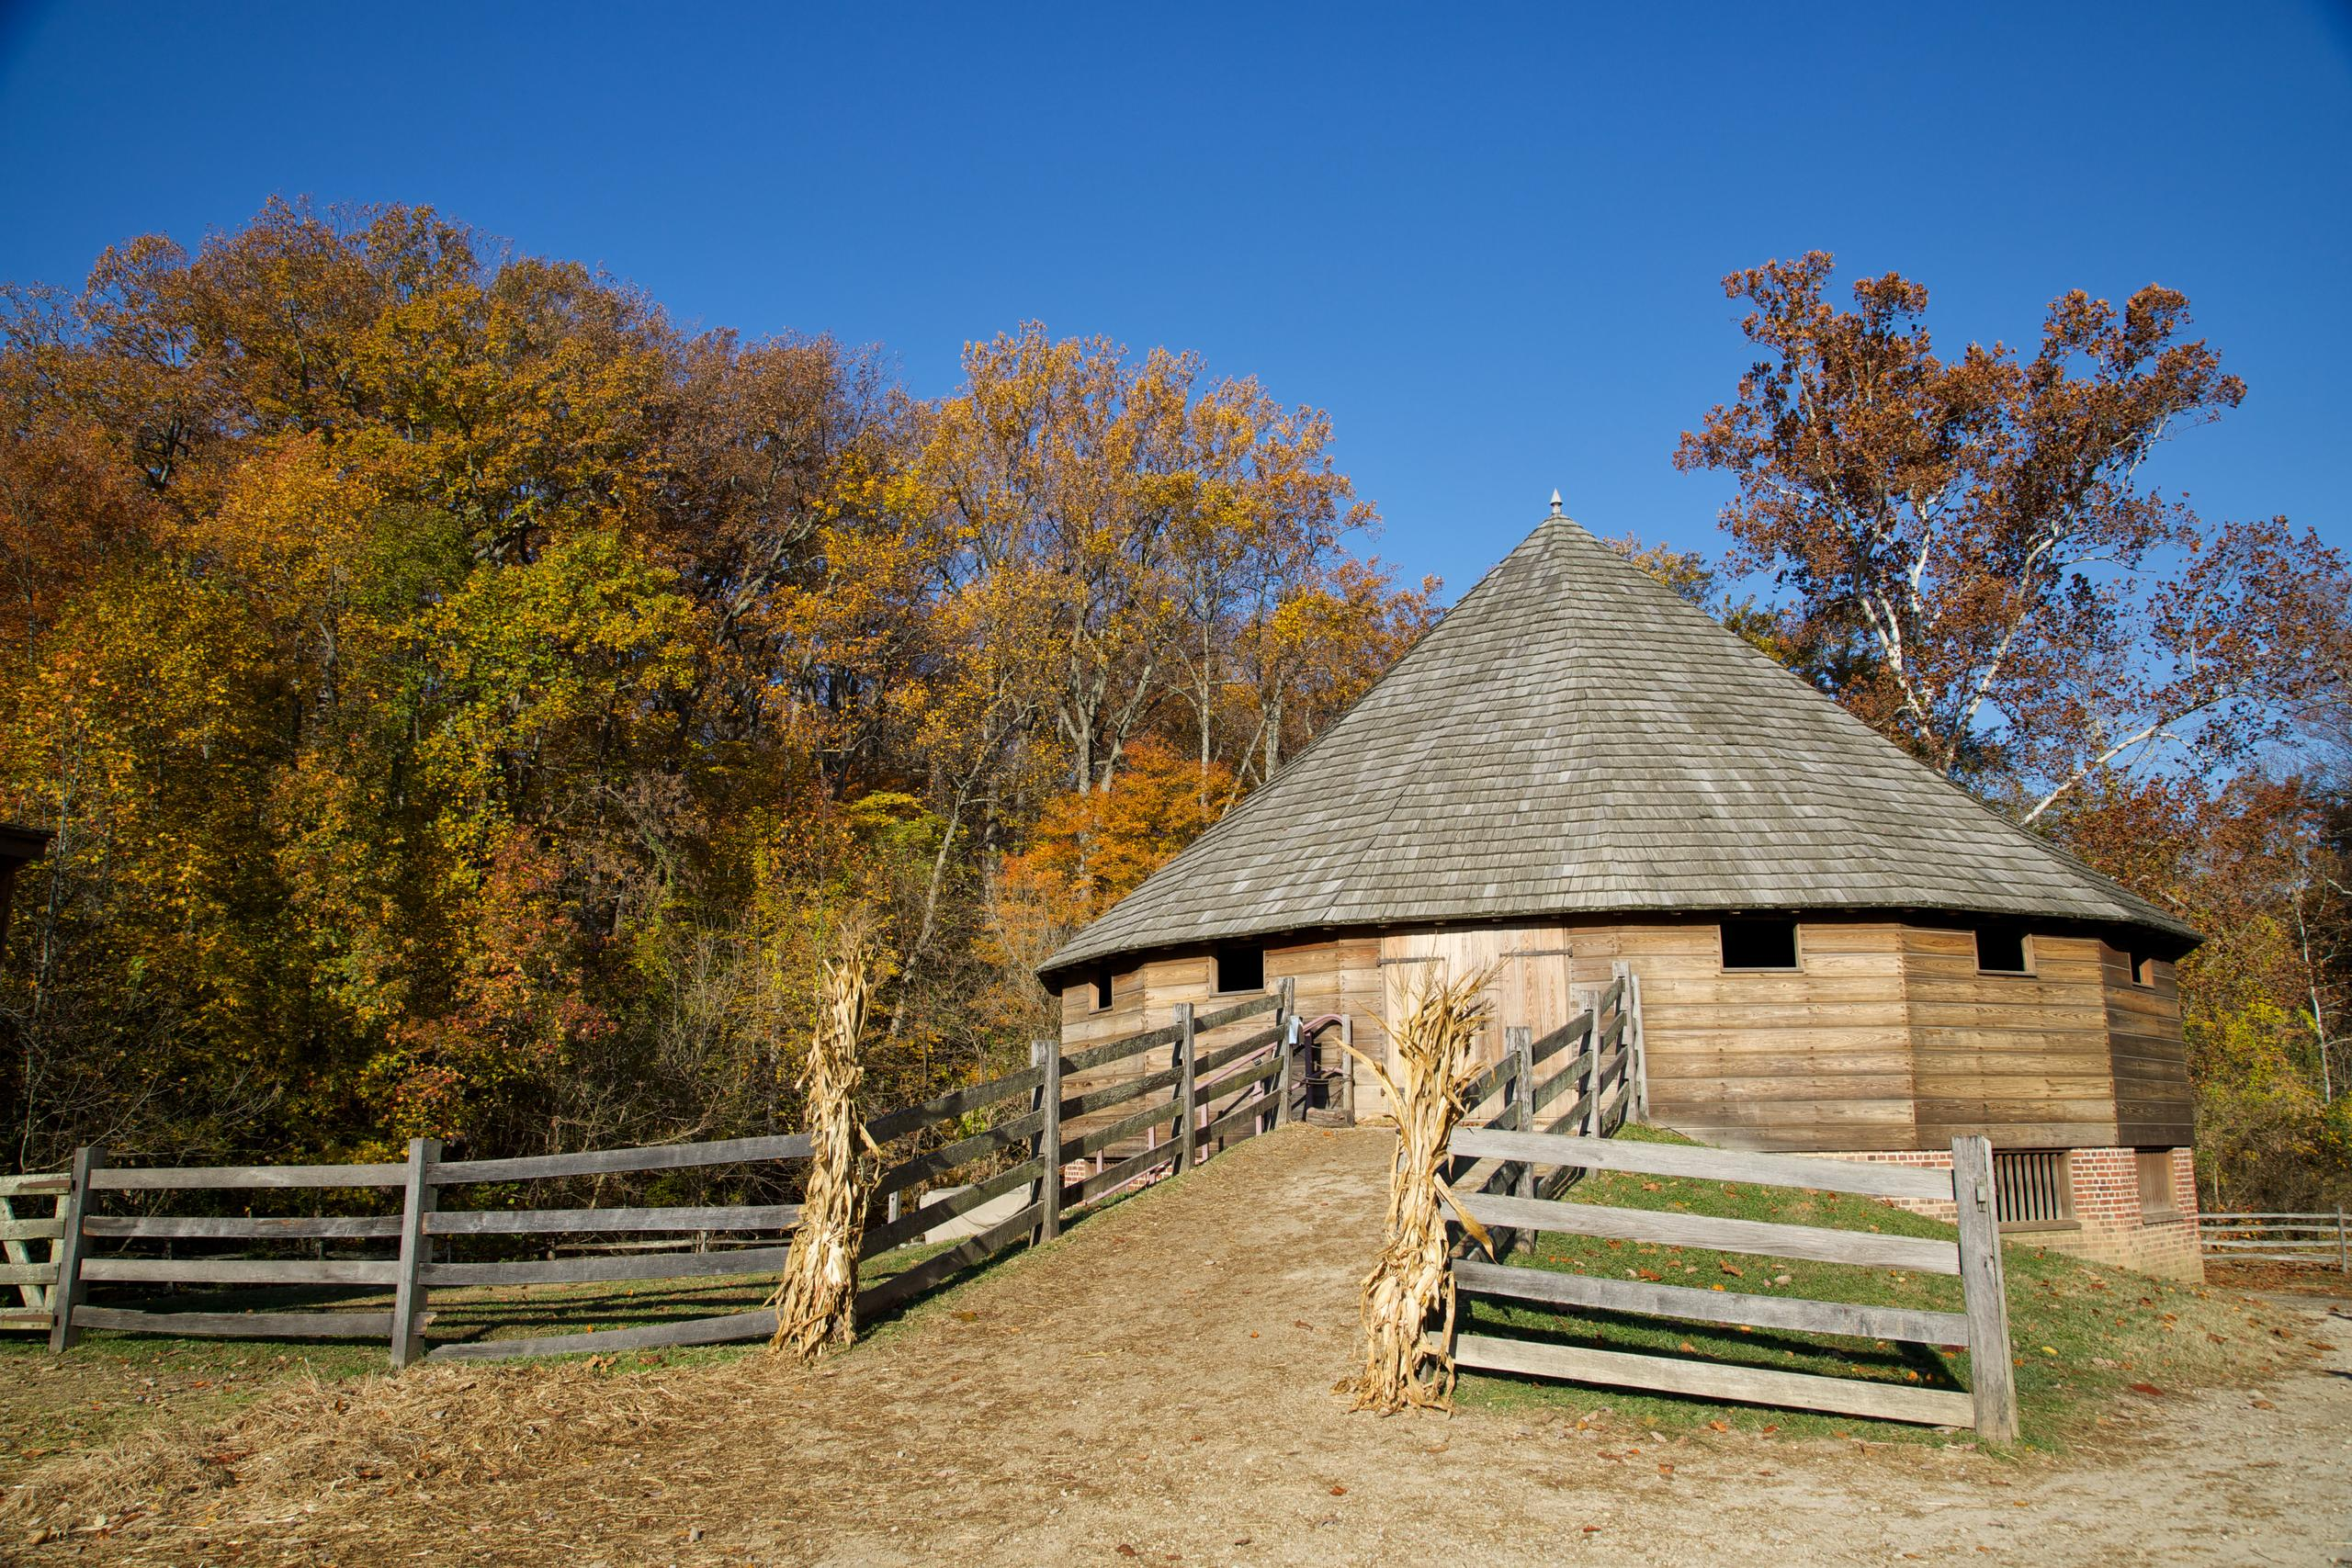 The recreated 16-sided barn at Mount Vernon. - MVLA